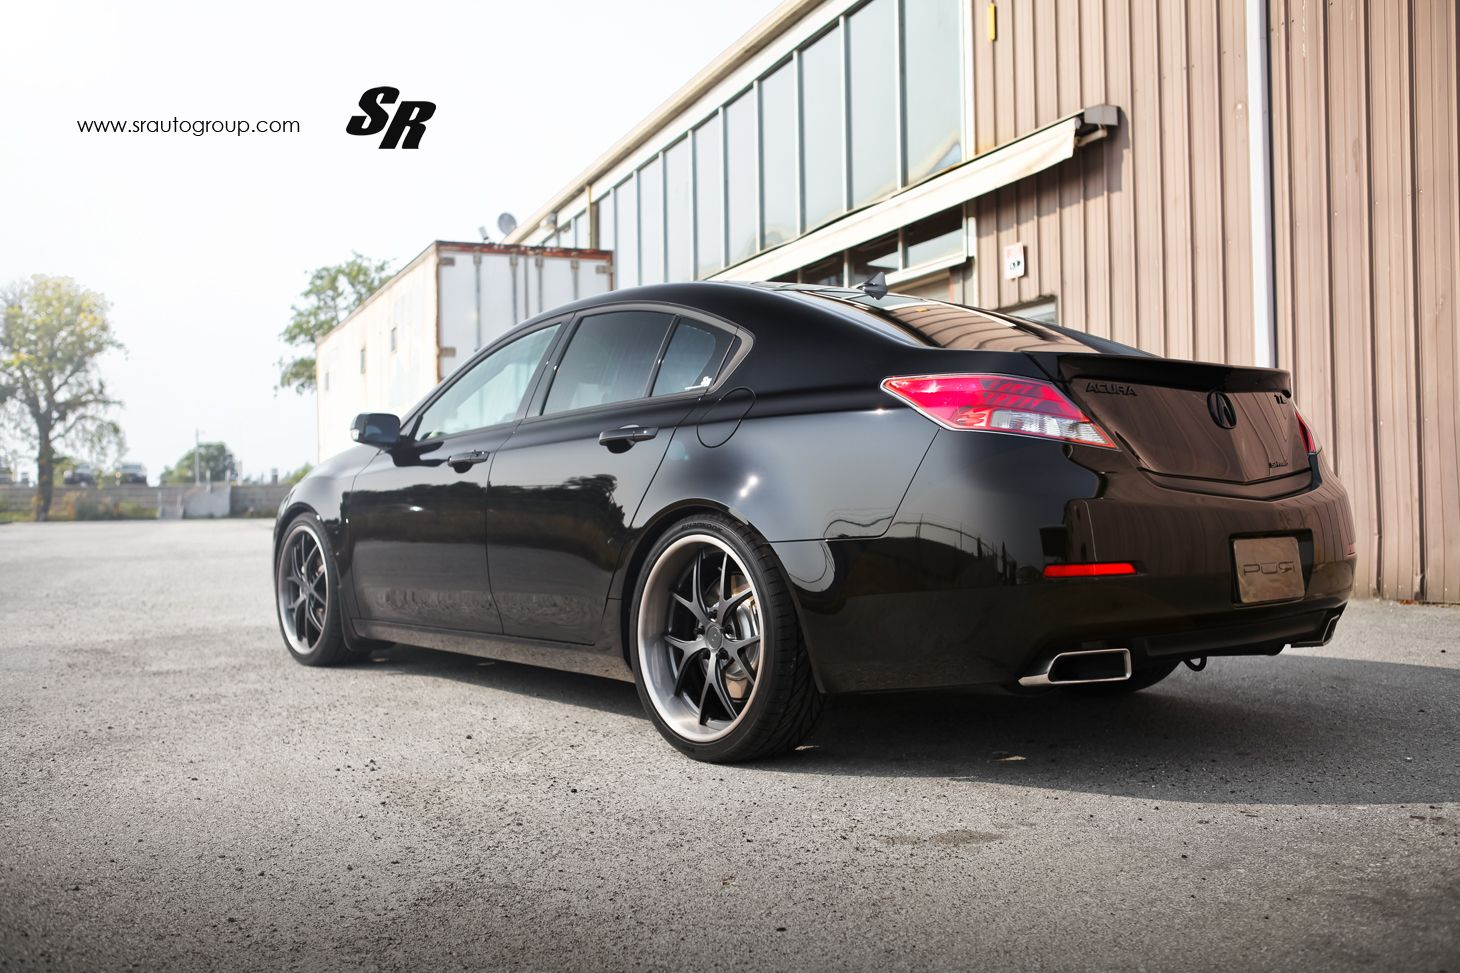 Pin By Ryan Doughty On Acura Pinterest Acura Tl Cars And Black Rims - Acura tl black rims